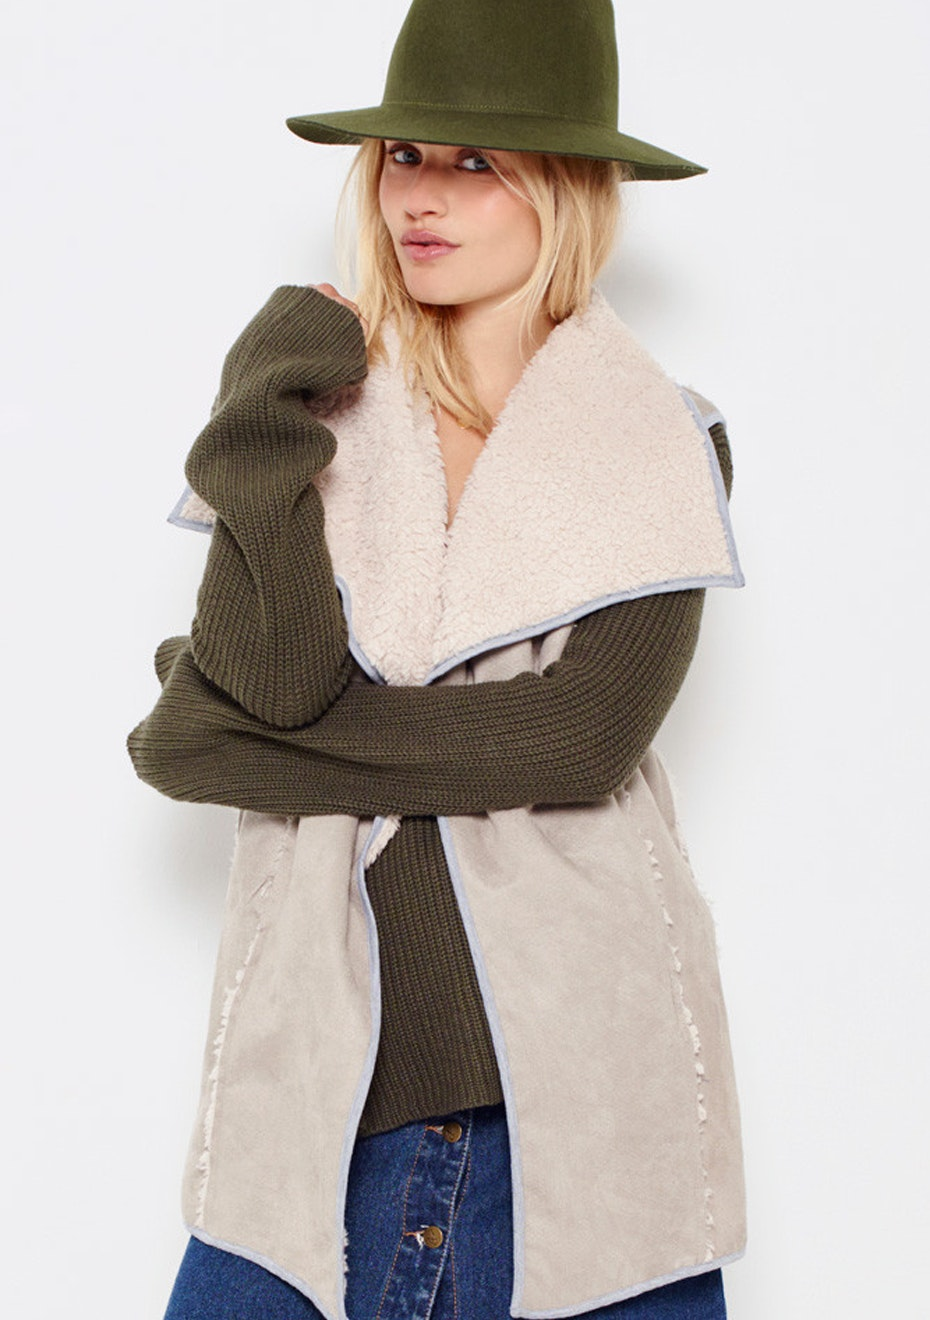 MINKPINK - Midnight Sky Crop Sherpa Vest - Cream